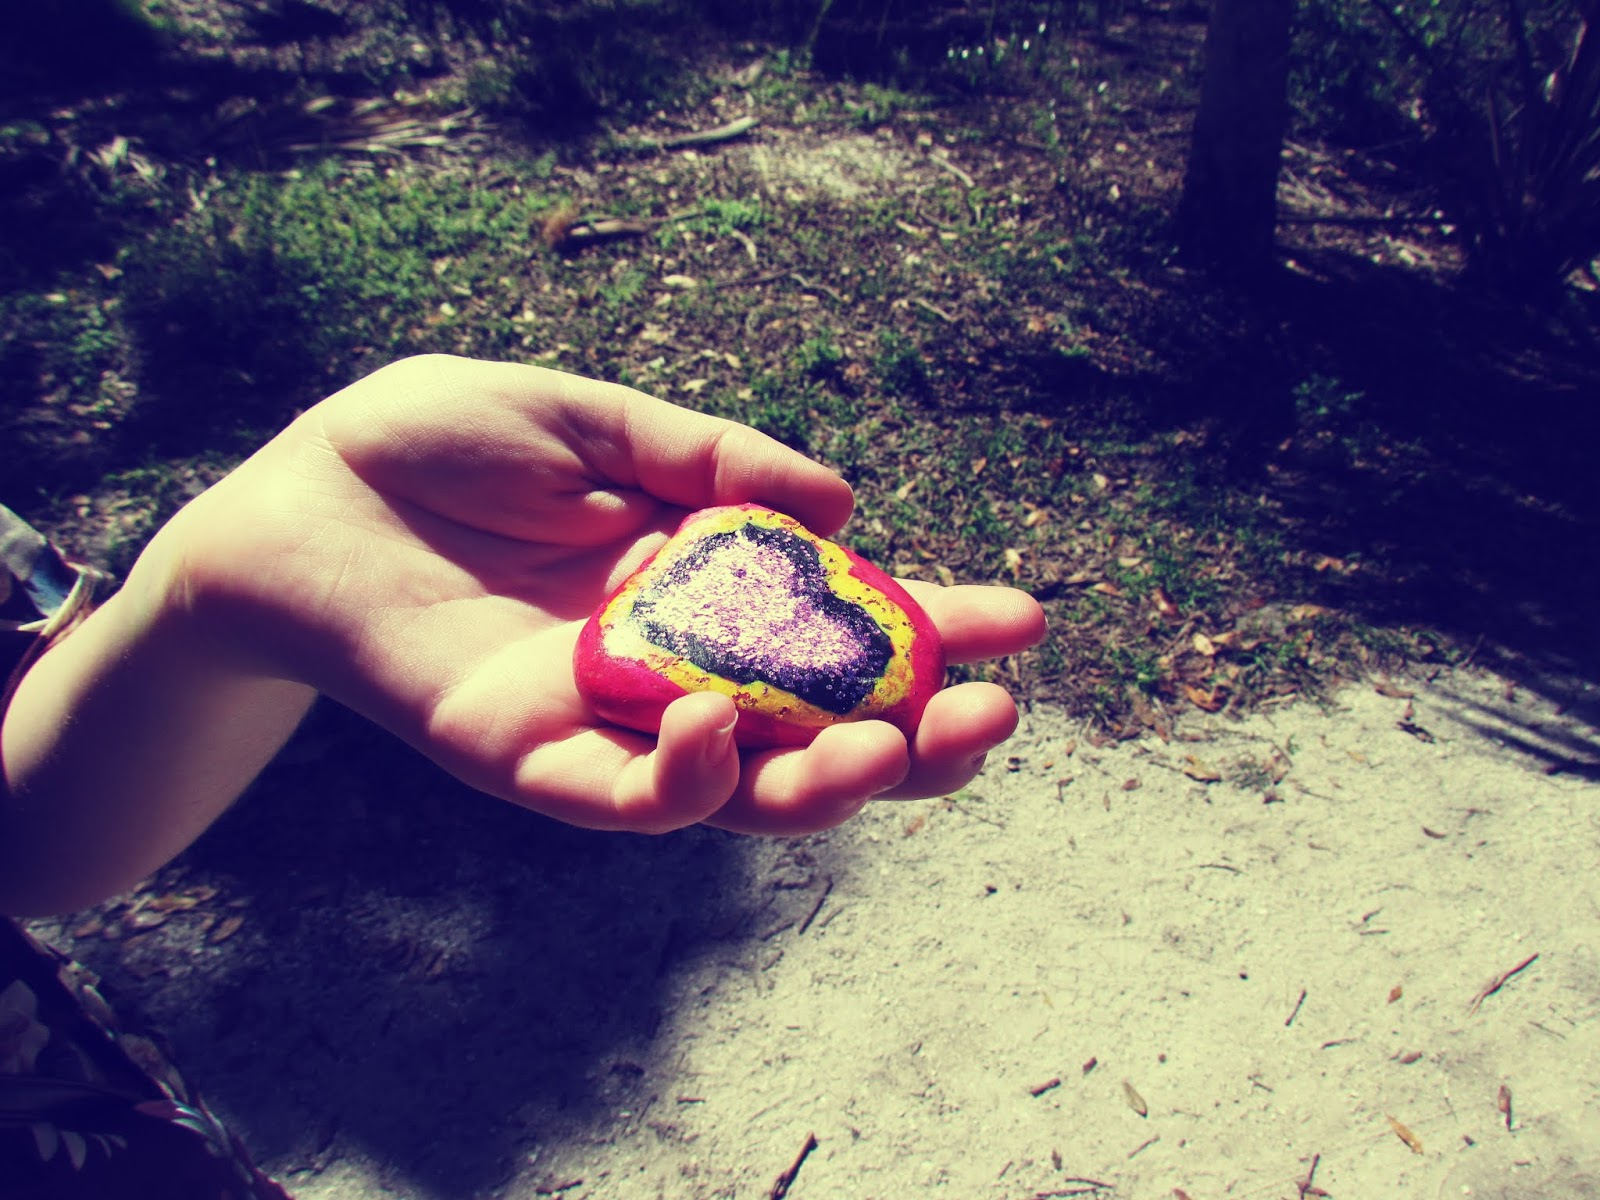 A Girl Holding a Painted Rock in Nature With a Heart and Glitter Painted on It